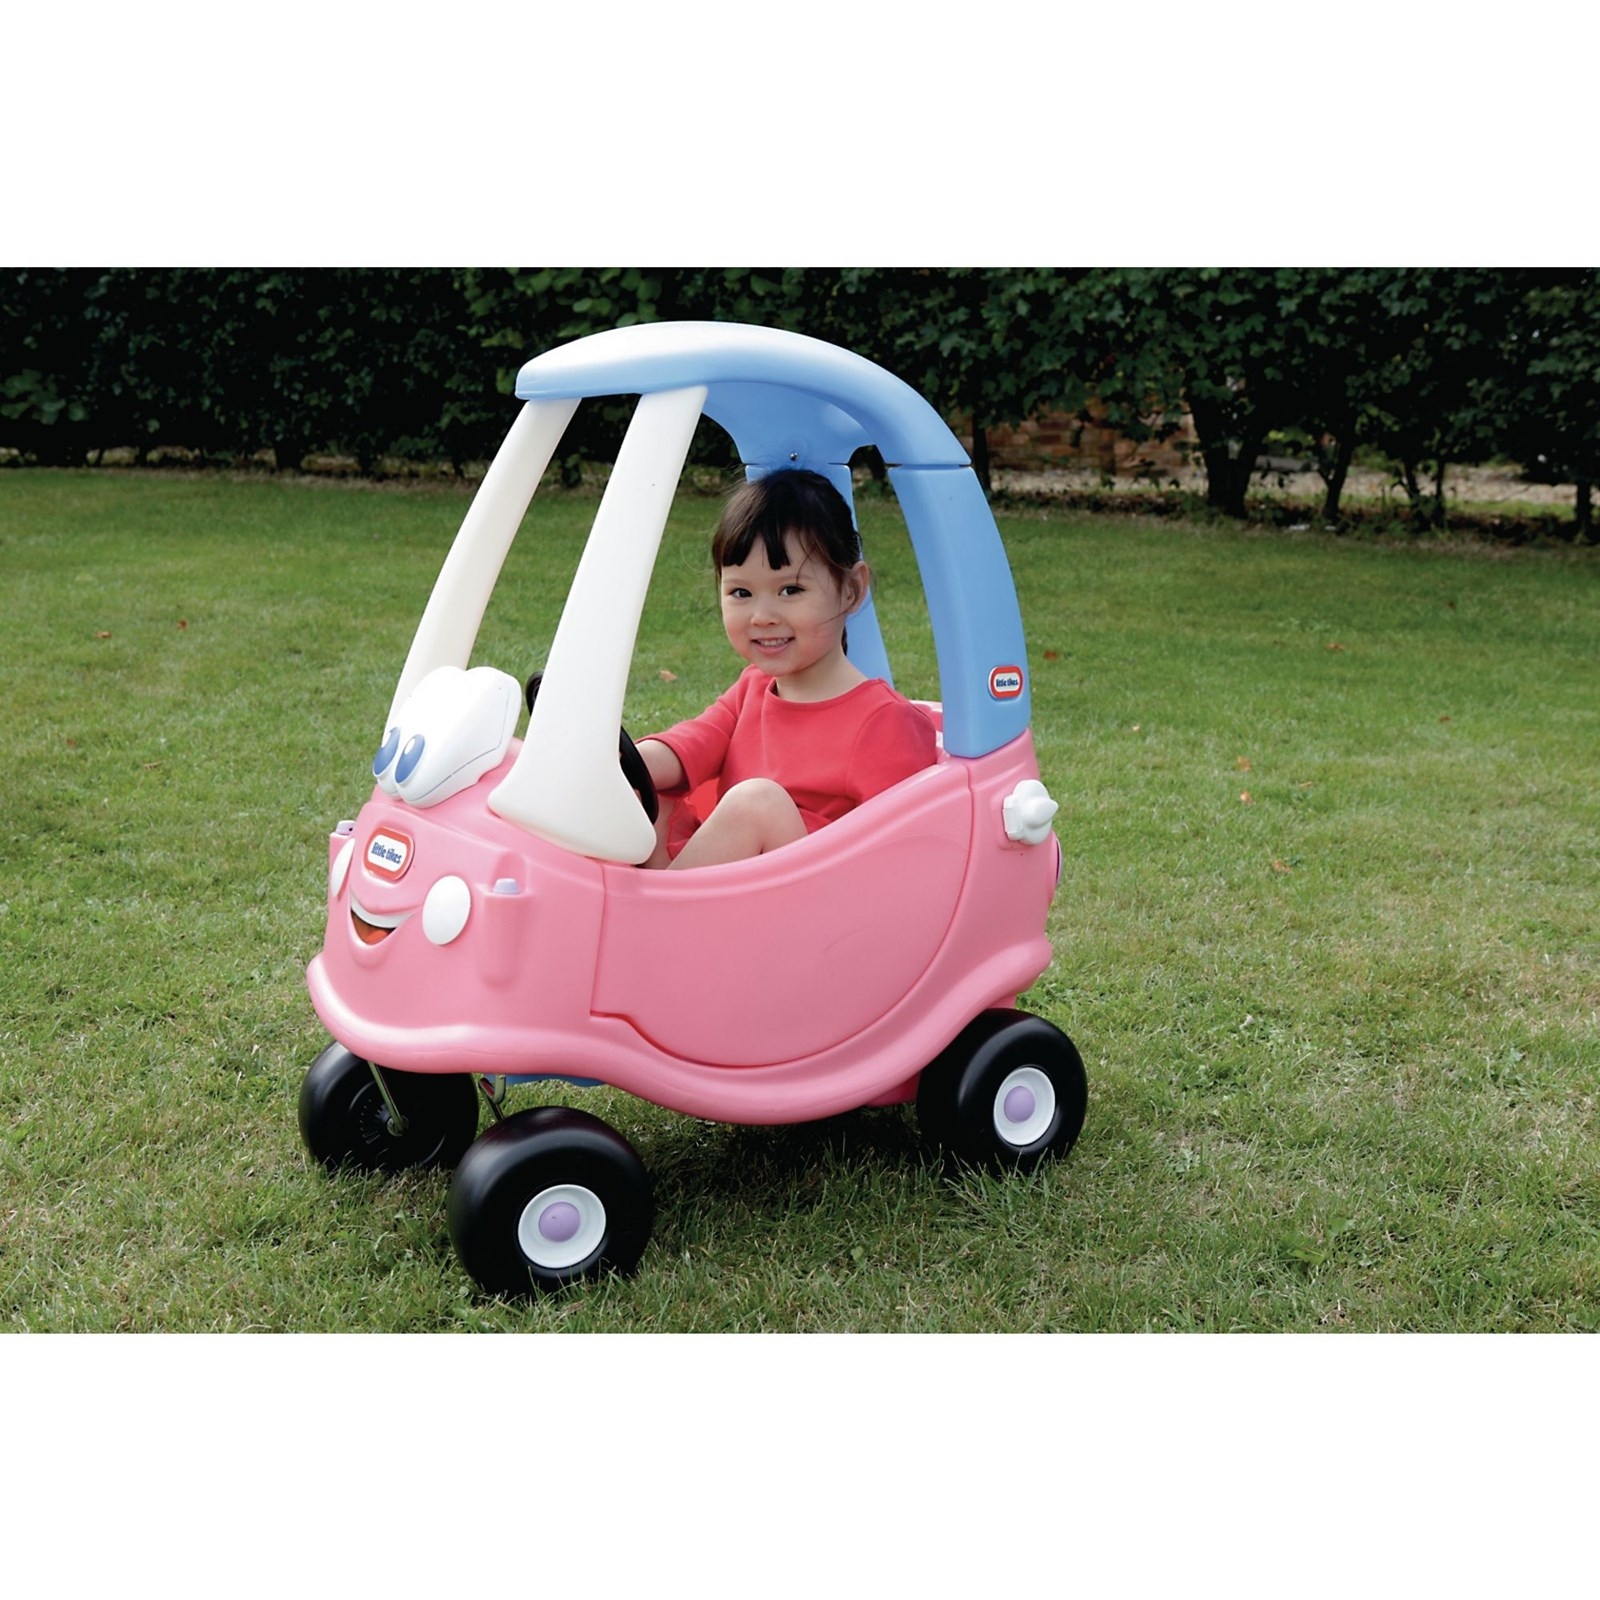 Little tikes pink cozy coupe hope education - Little tikes cozy coupe pink ...